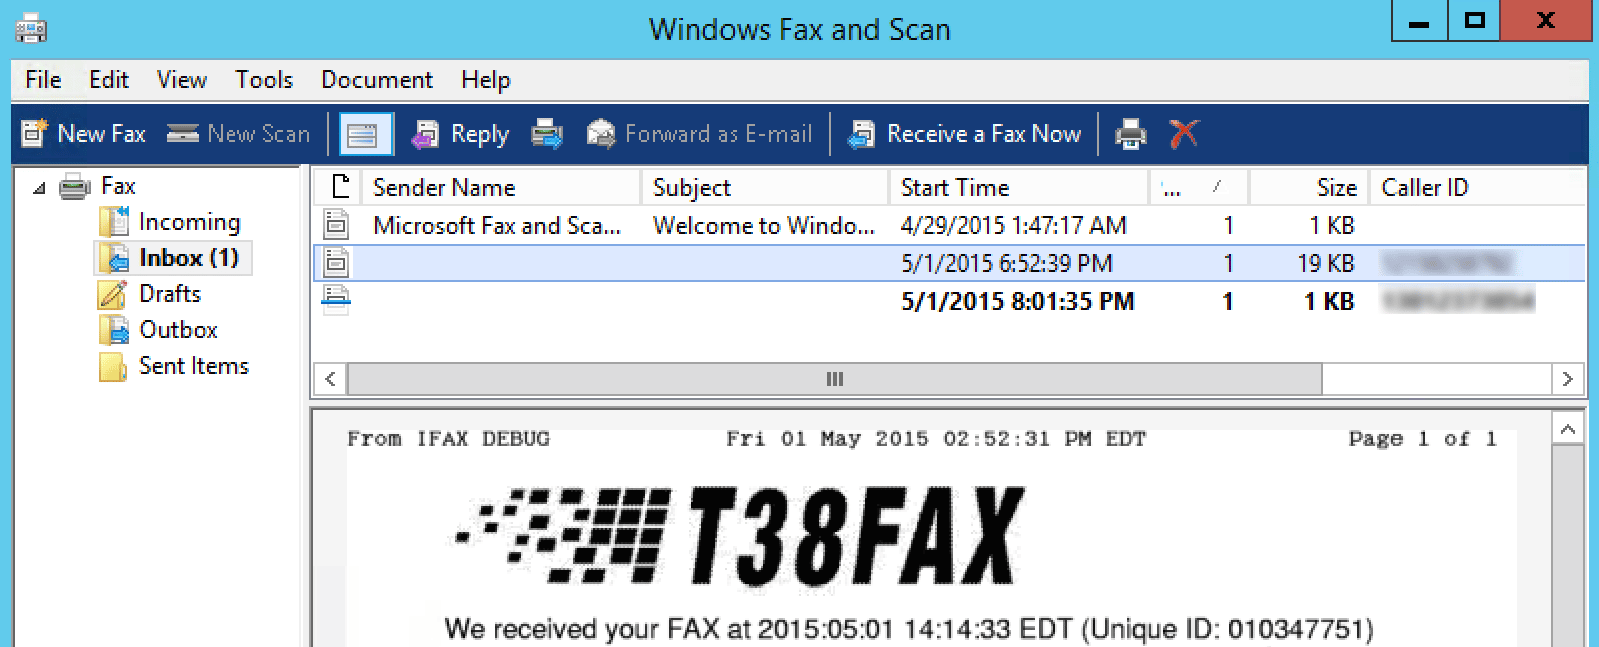 View your sent and received faxes in Windows Fax and Scan